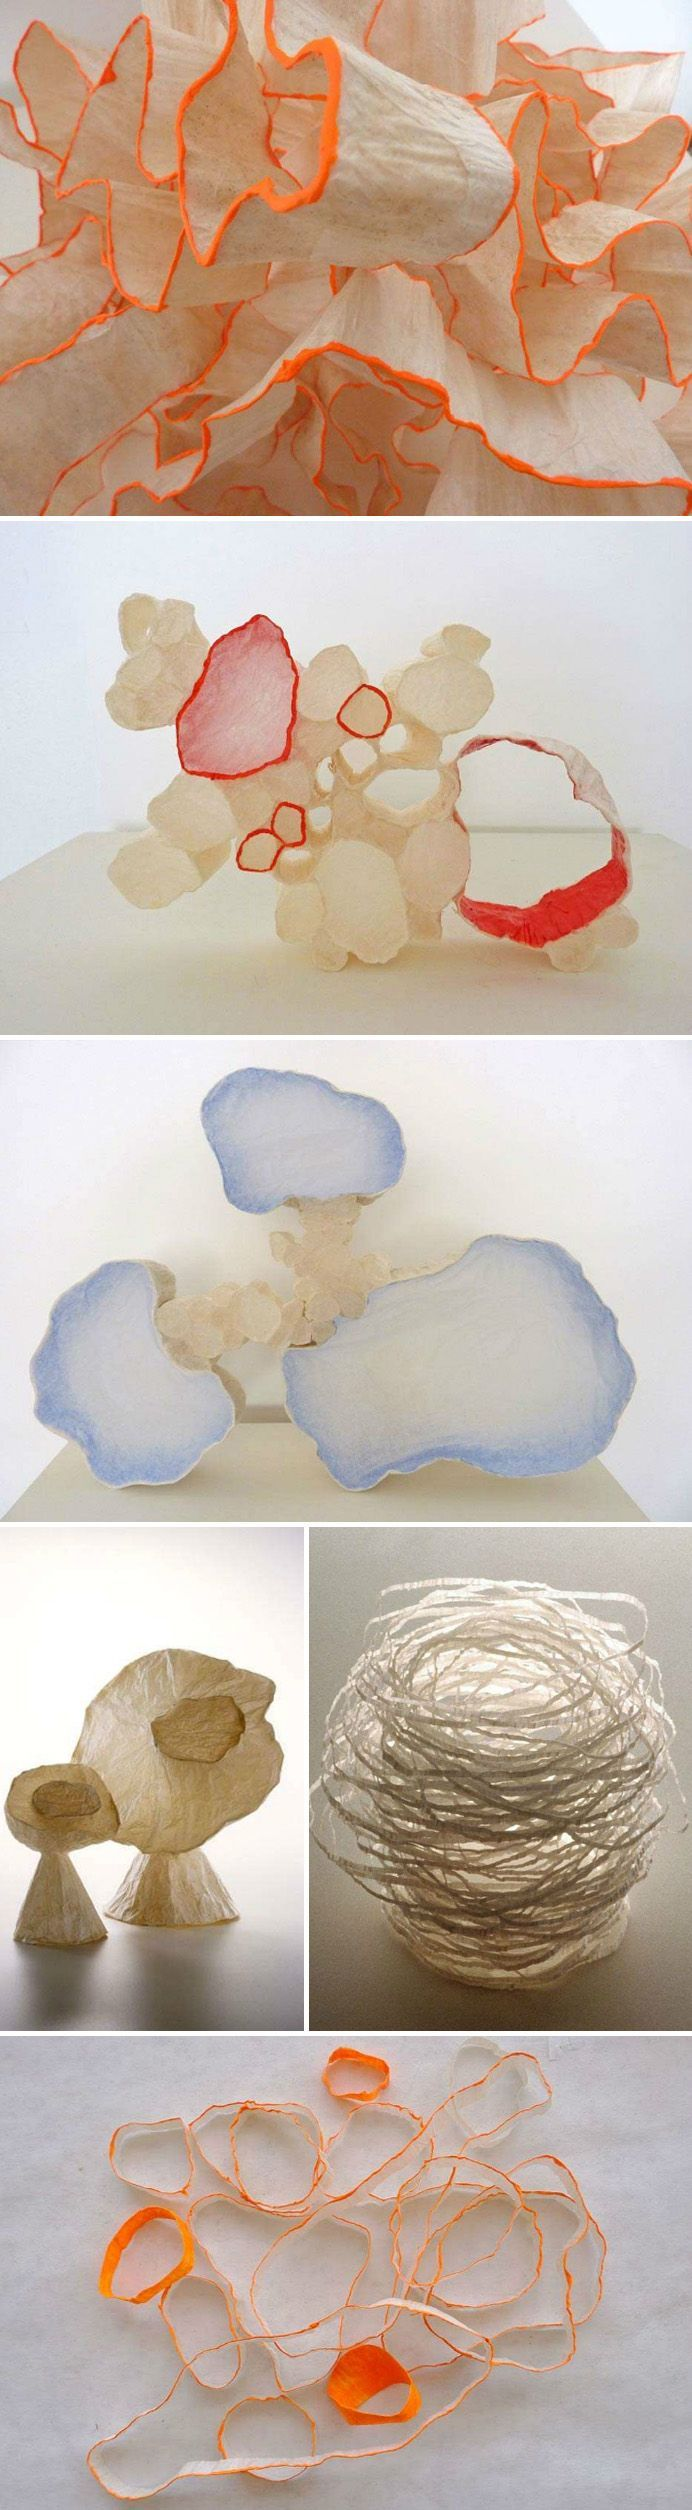 Click to enlarge California artist Mary Button Durell creates paper sculptures using only tracing paper and wheat paste. They have been compared to cellular membranes and described as biomorphic ab...